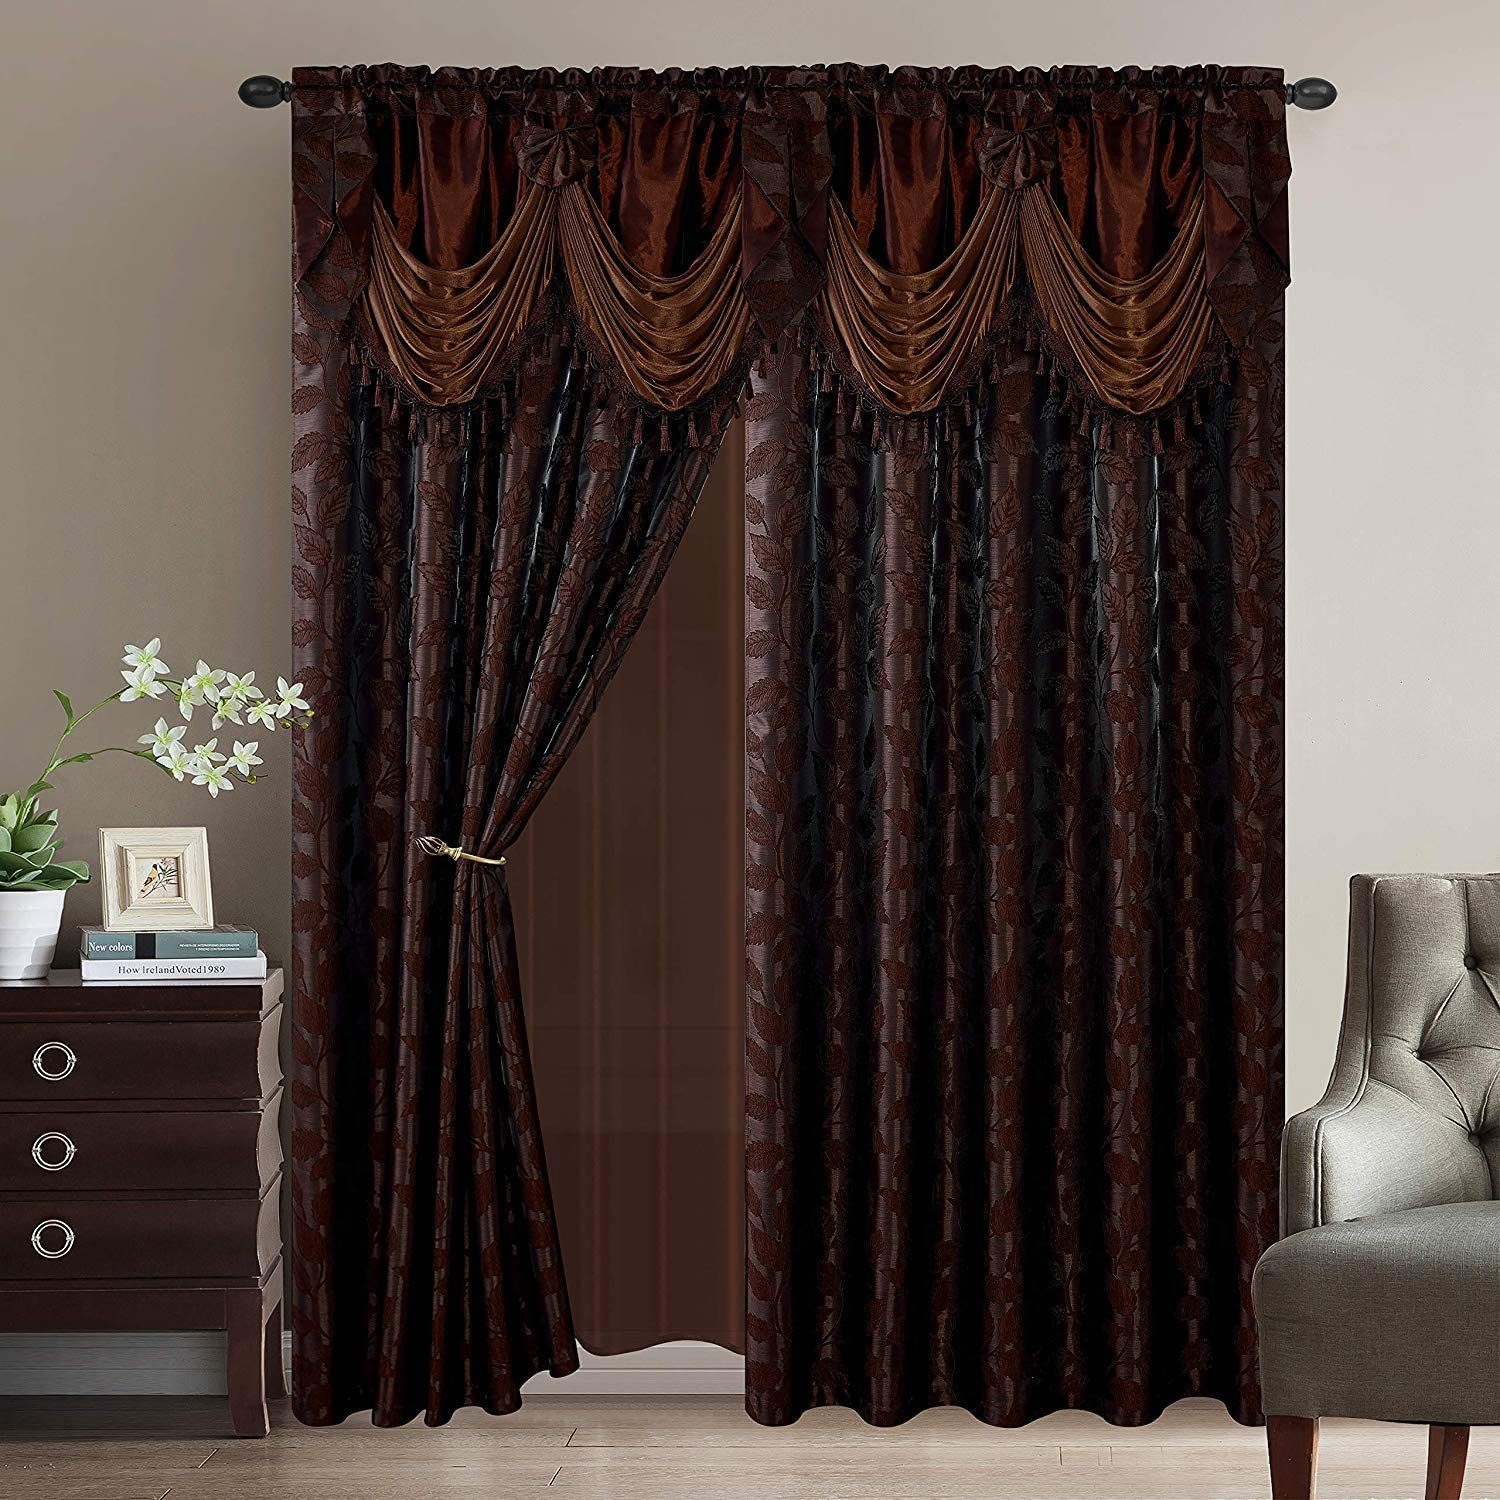 Luxury Home Collection Jacquard Leaves Window 2 Panel Curtain Set with Attached Valances and Backing with 2 Tassel Tie Backs -Window Curtains for Bedroom, Living Room, or Dining (Brown, 55